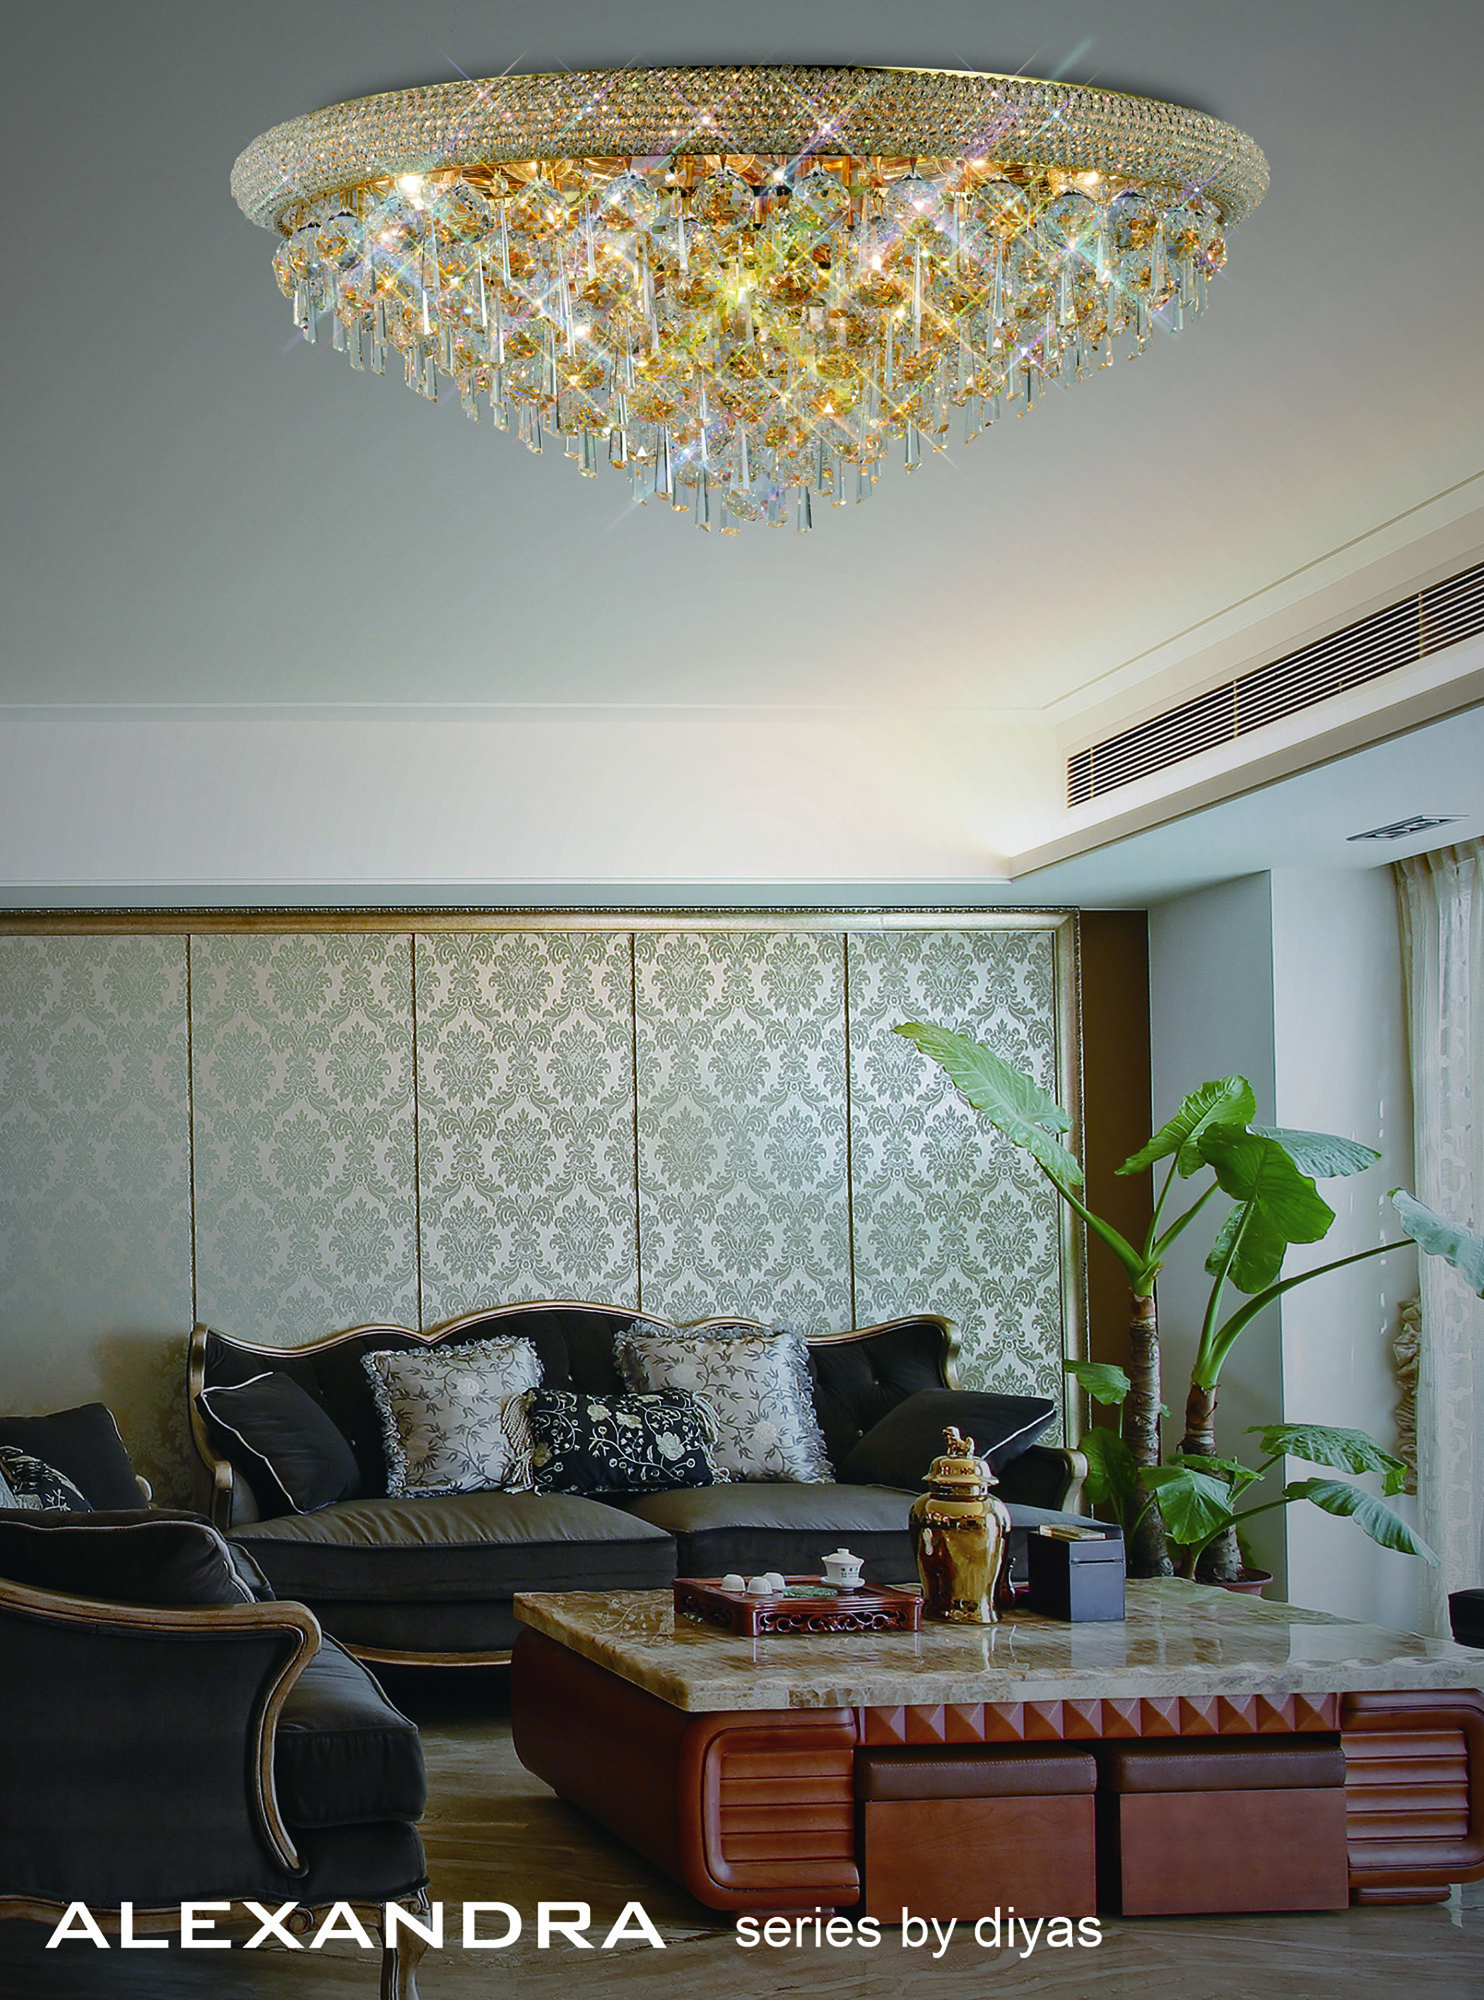 Alexandra Crystal Ceiling Lights Diyas Contemporary Crystal Ceiling Lights